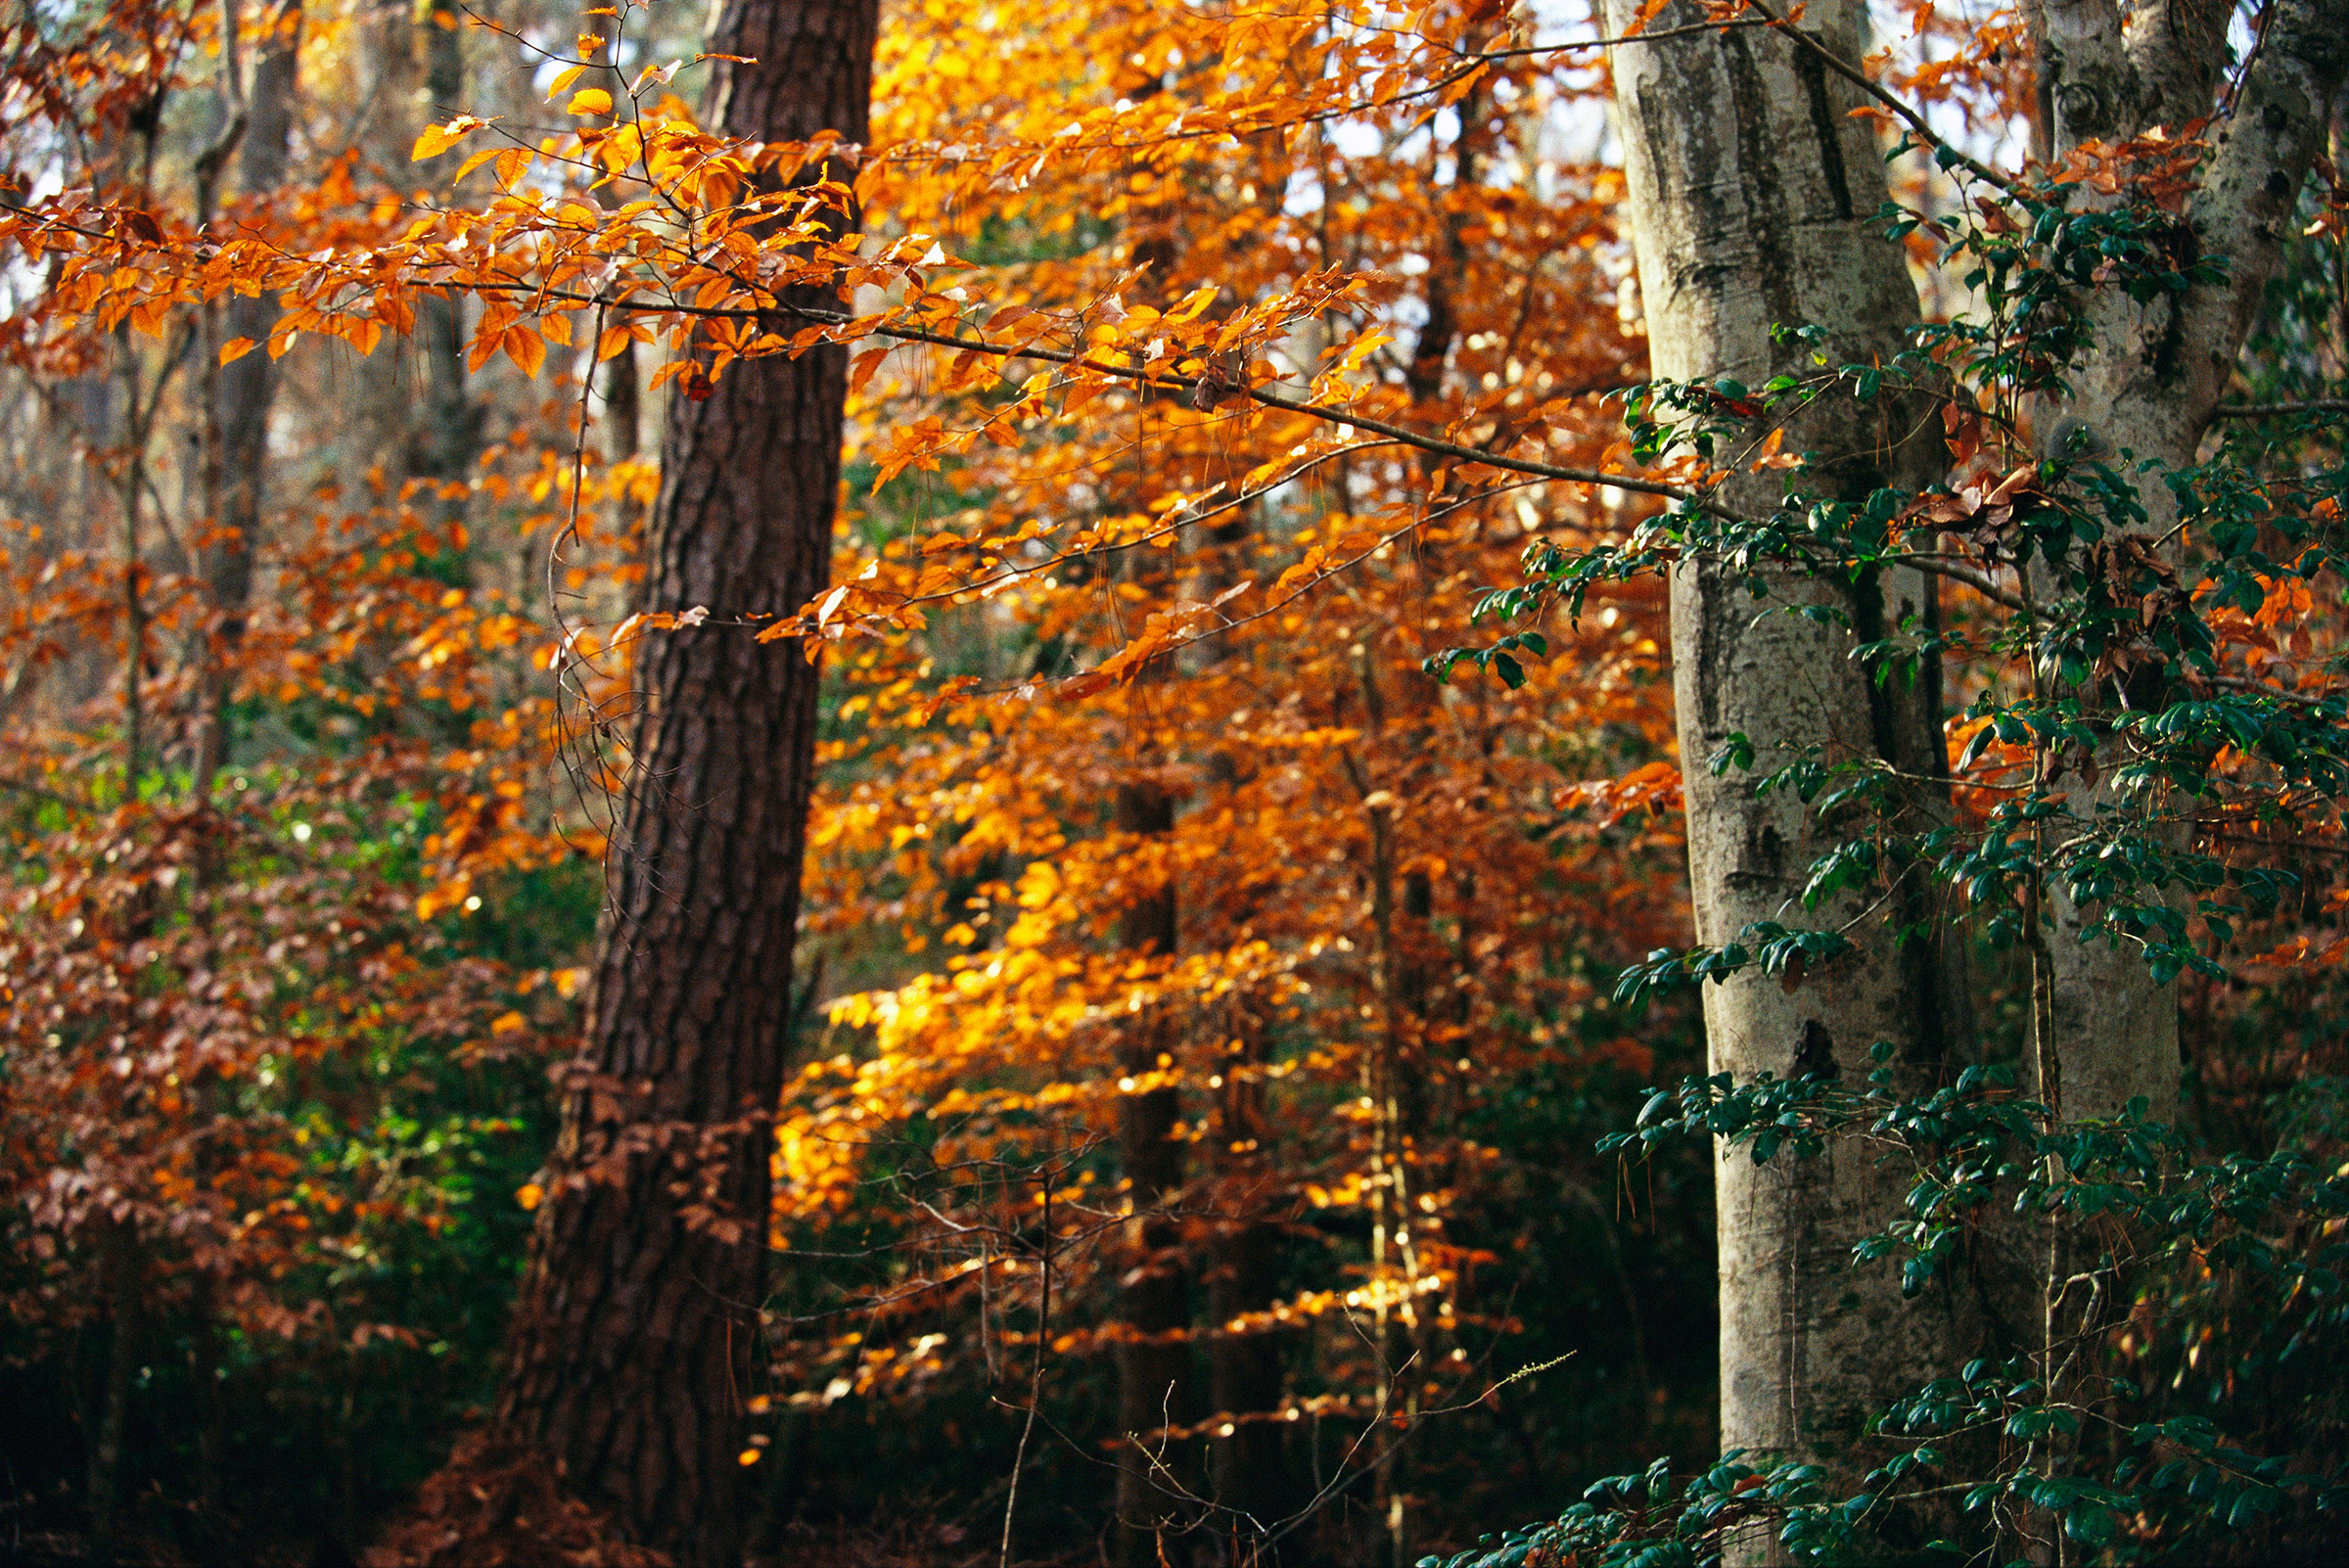 American beech (front right) in full autumnal display. Raymond Gehman/National Geographic Creative